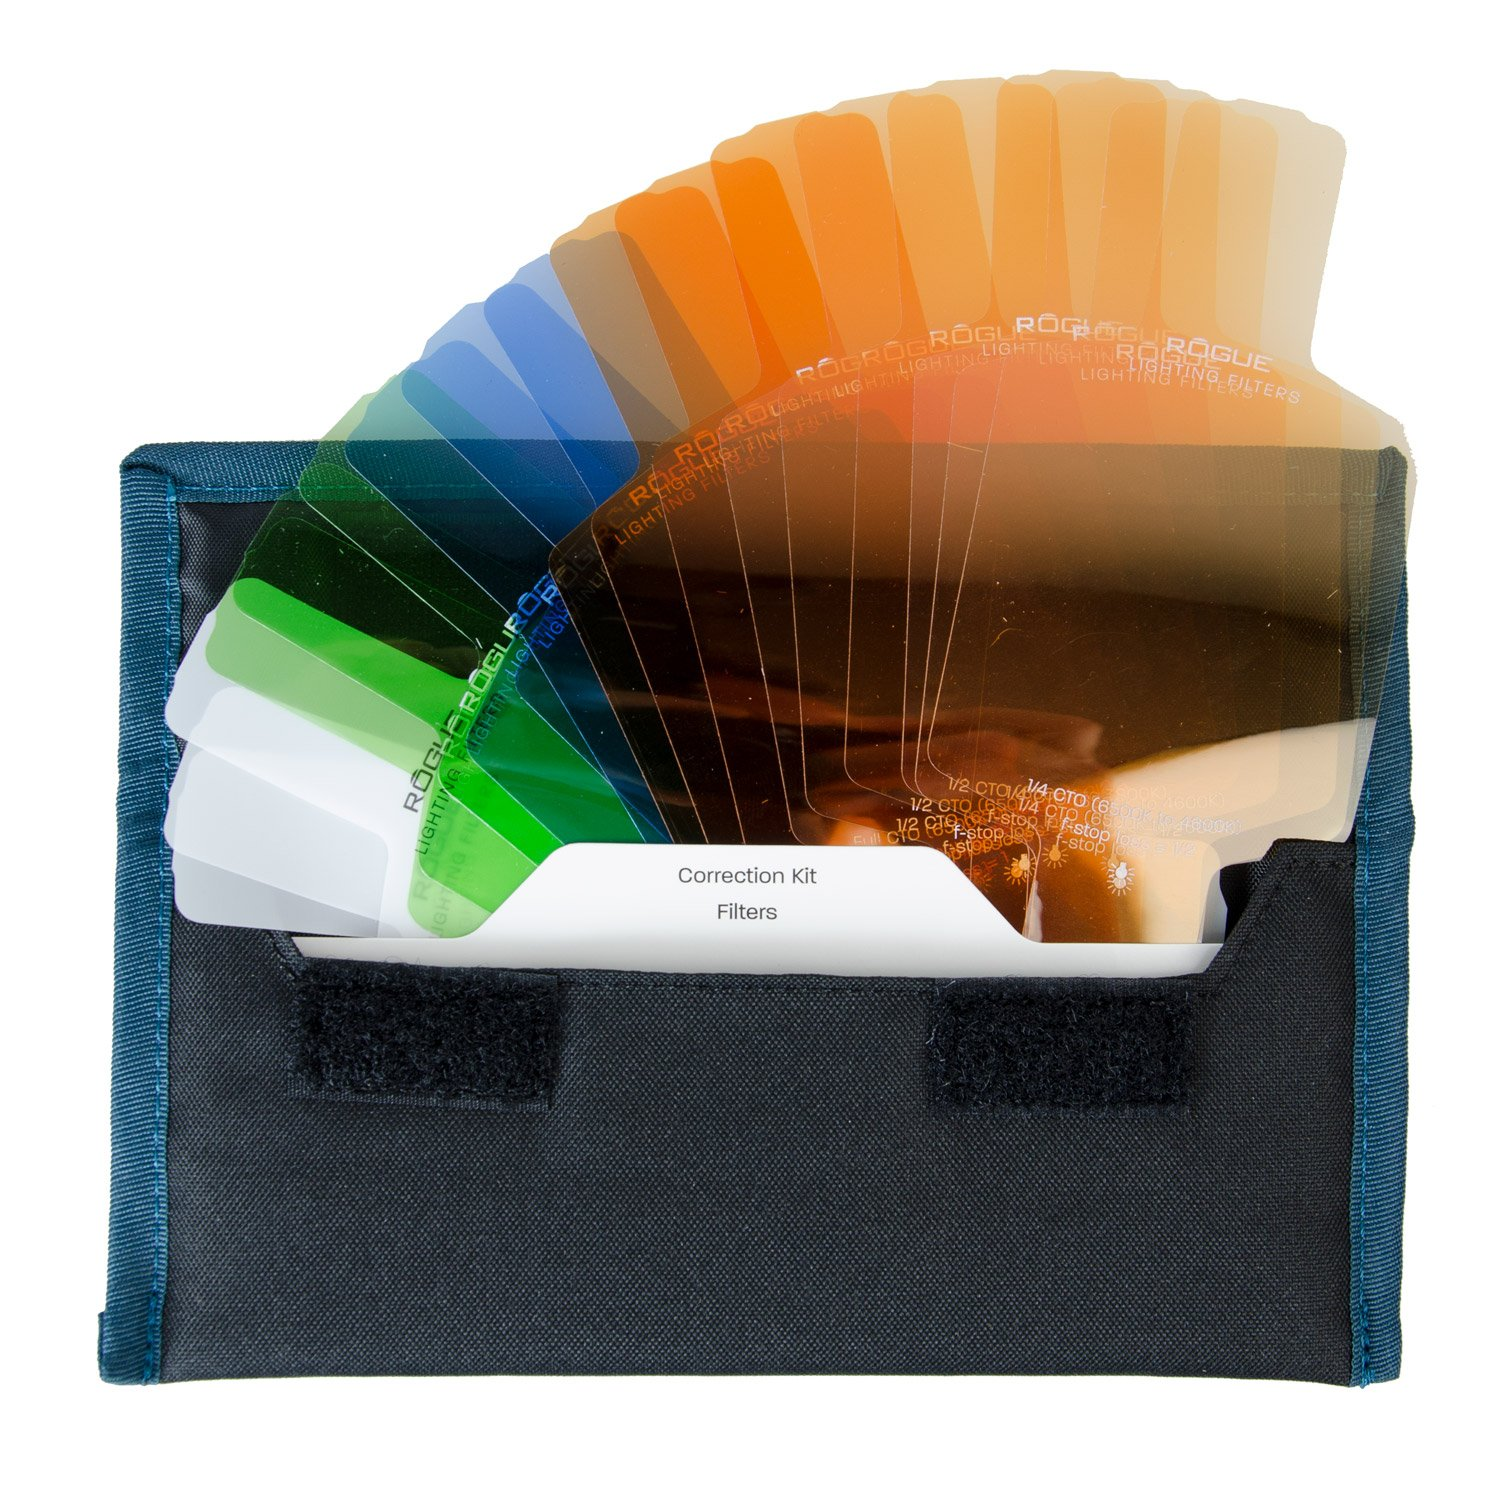 Rogue Photographic Design ROGUEGEL-CC Flash Gels Color Correction Filter Kit by Rogue Photographic Design (Image #3)